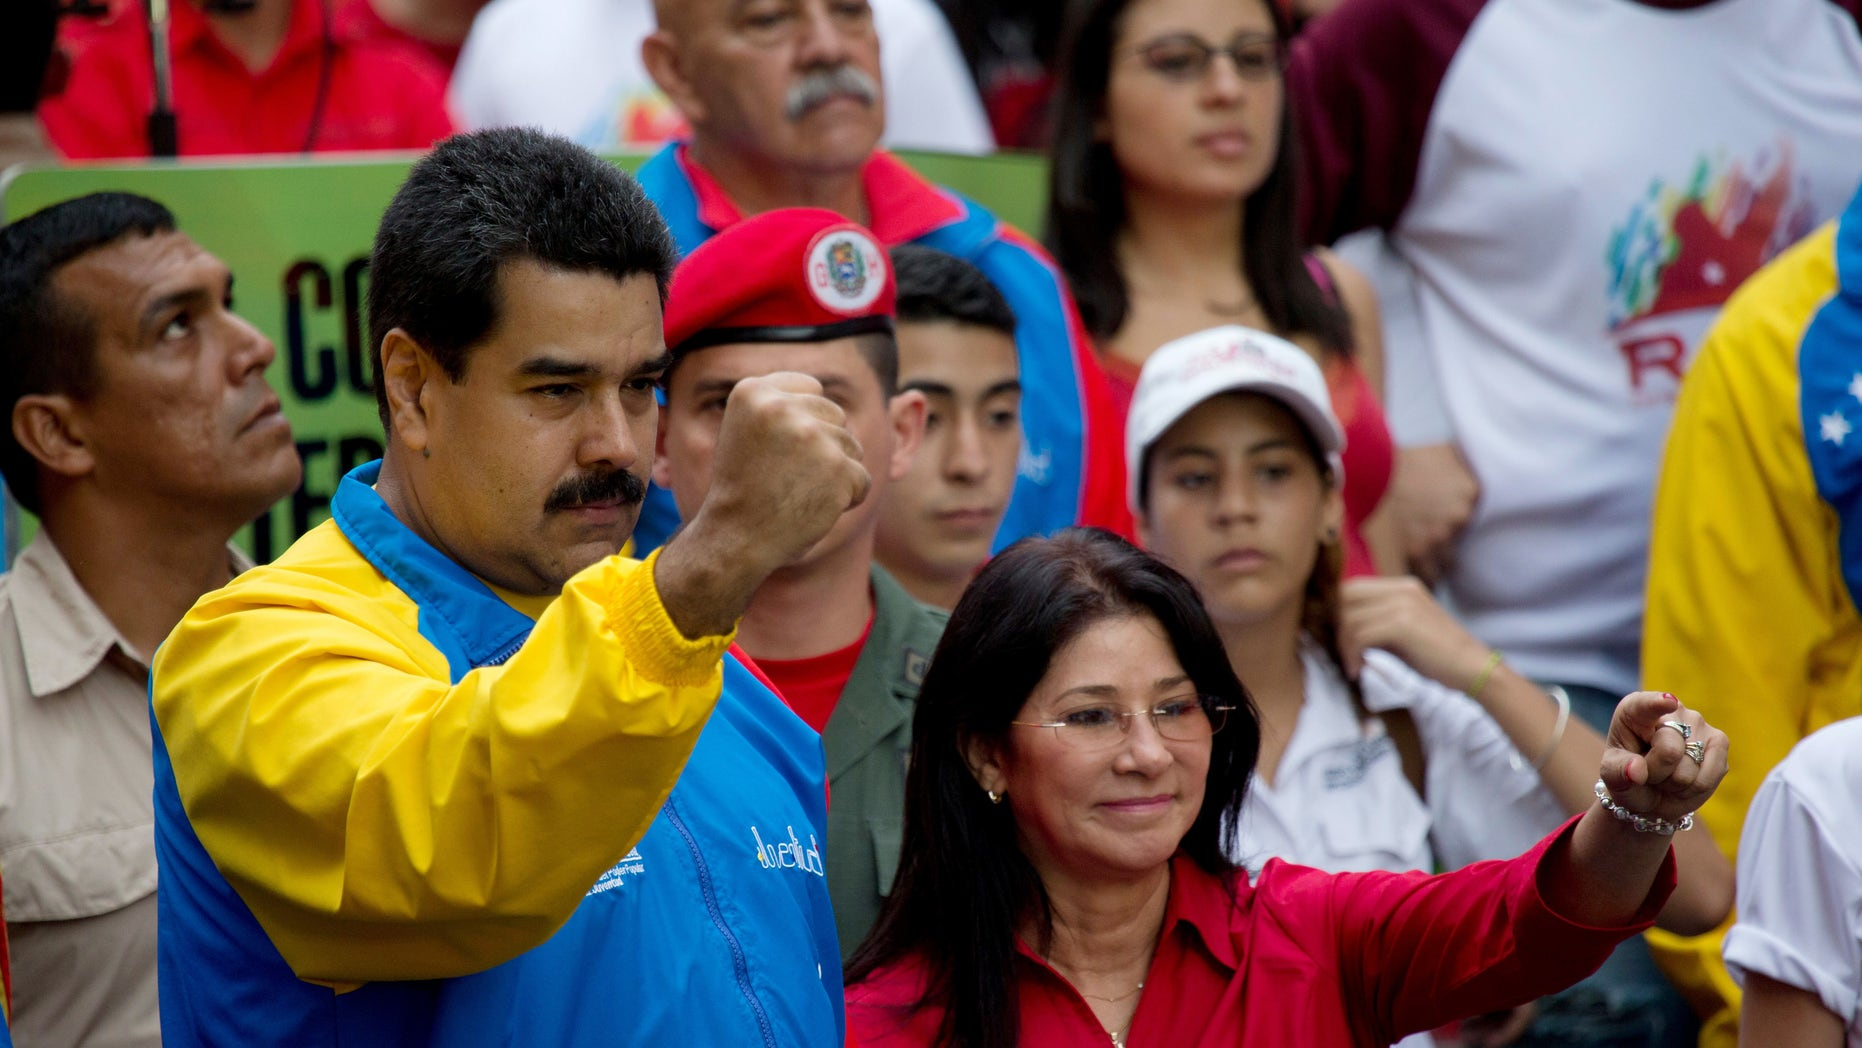 FILE - In this Oct. 18, 2014 file photo, Venezuela's President Nicolas Maduro and first lady Cilia Flores, greet supporters as they arrive for a march for peace in Caracas, Venezuela. Two nephews of Venezuela's powerful first lady Cilia Flores were arrested in Haiti on charges of conspiring to smuggle 800 kilograms of cocaine into the U.S. and will be arraigned in New York, three people familiar with the case said Wednesday, Nov. 11, 2015. (AP Photo/Fernando Llano, File)